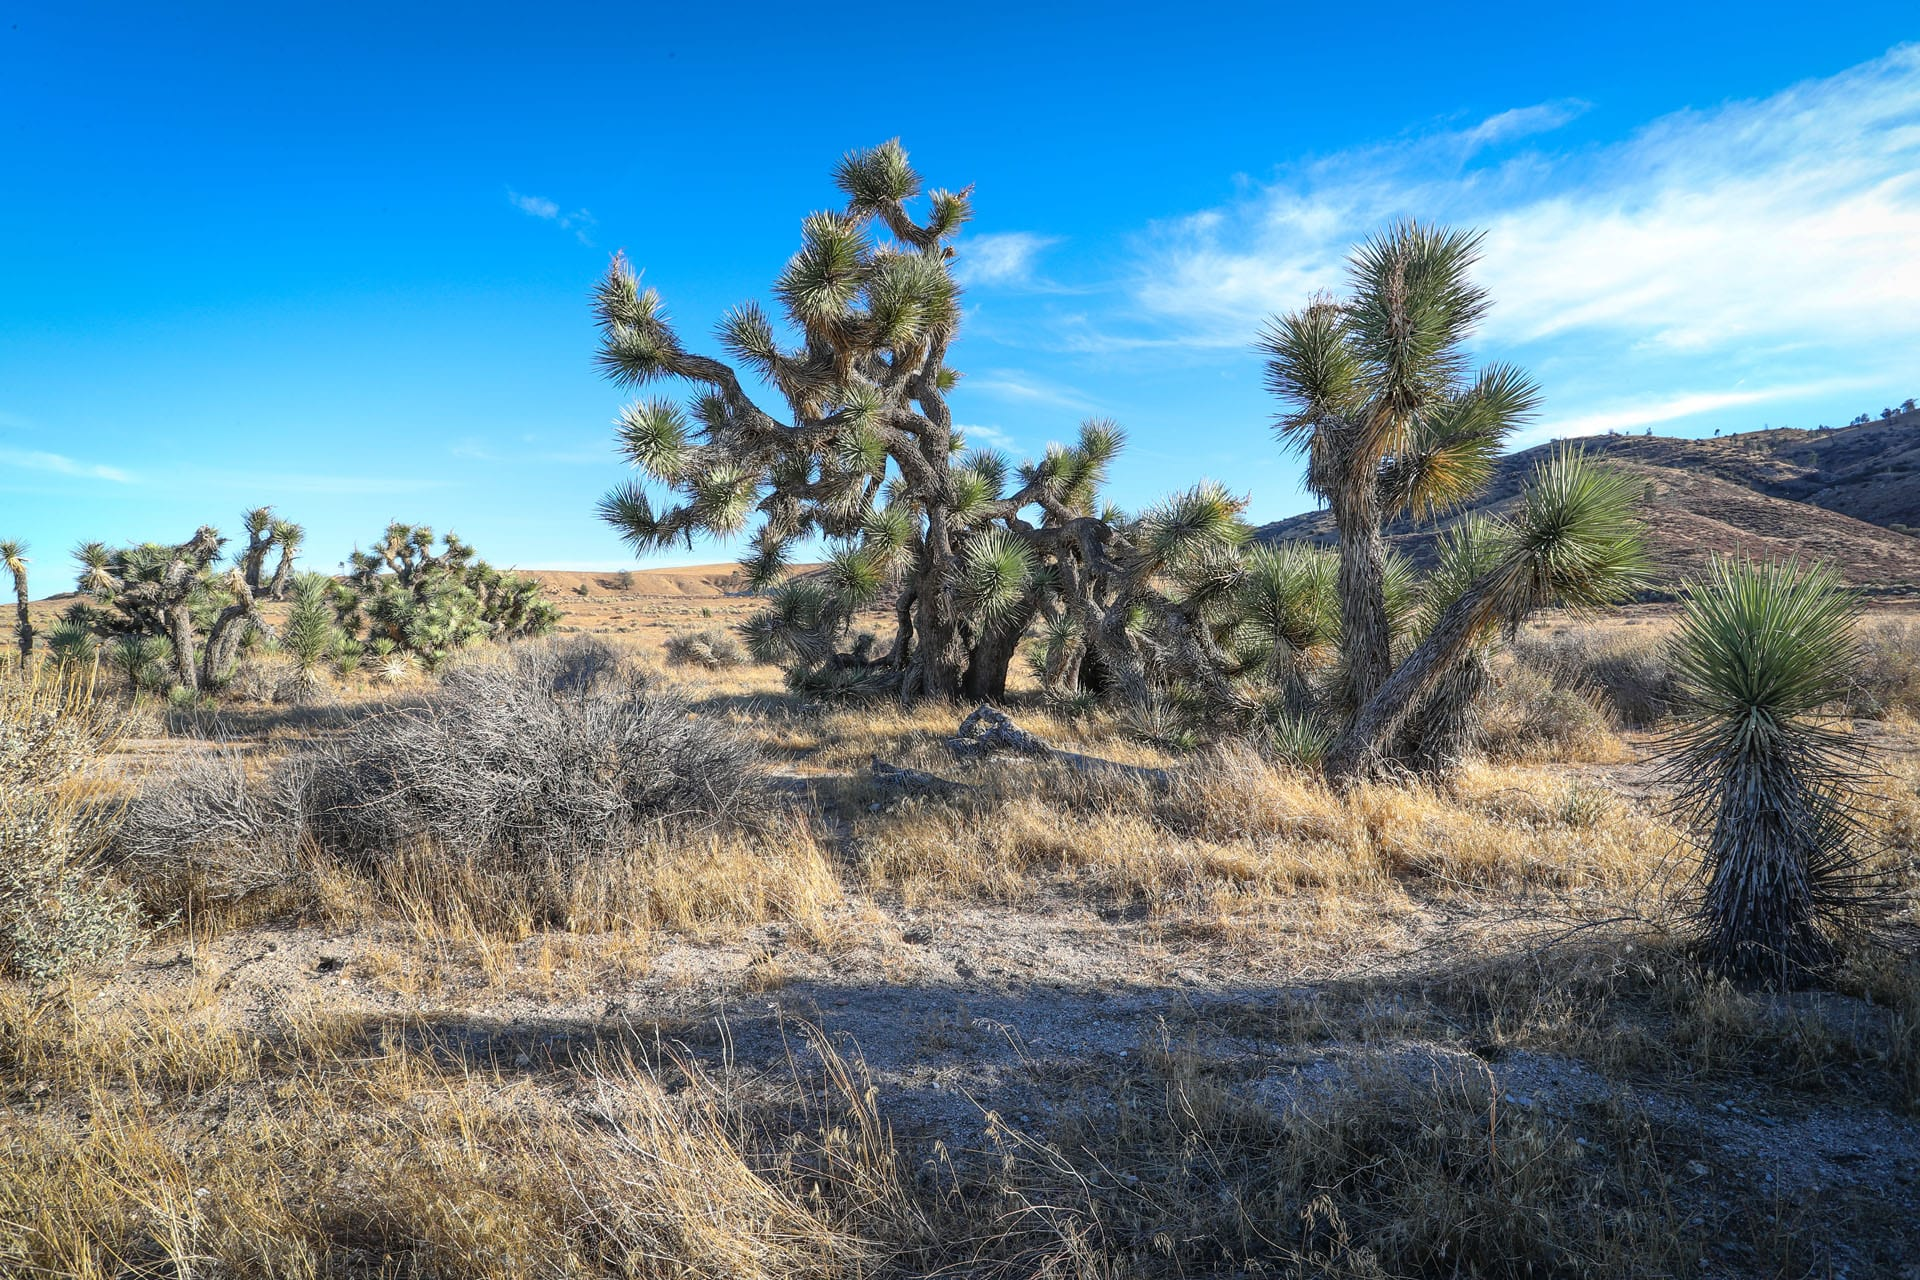 Joshua trees in a hilly field